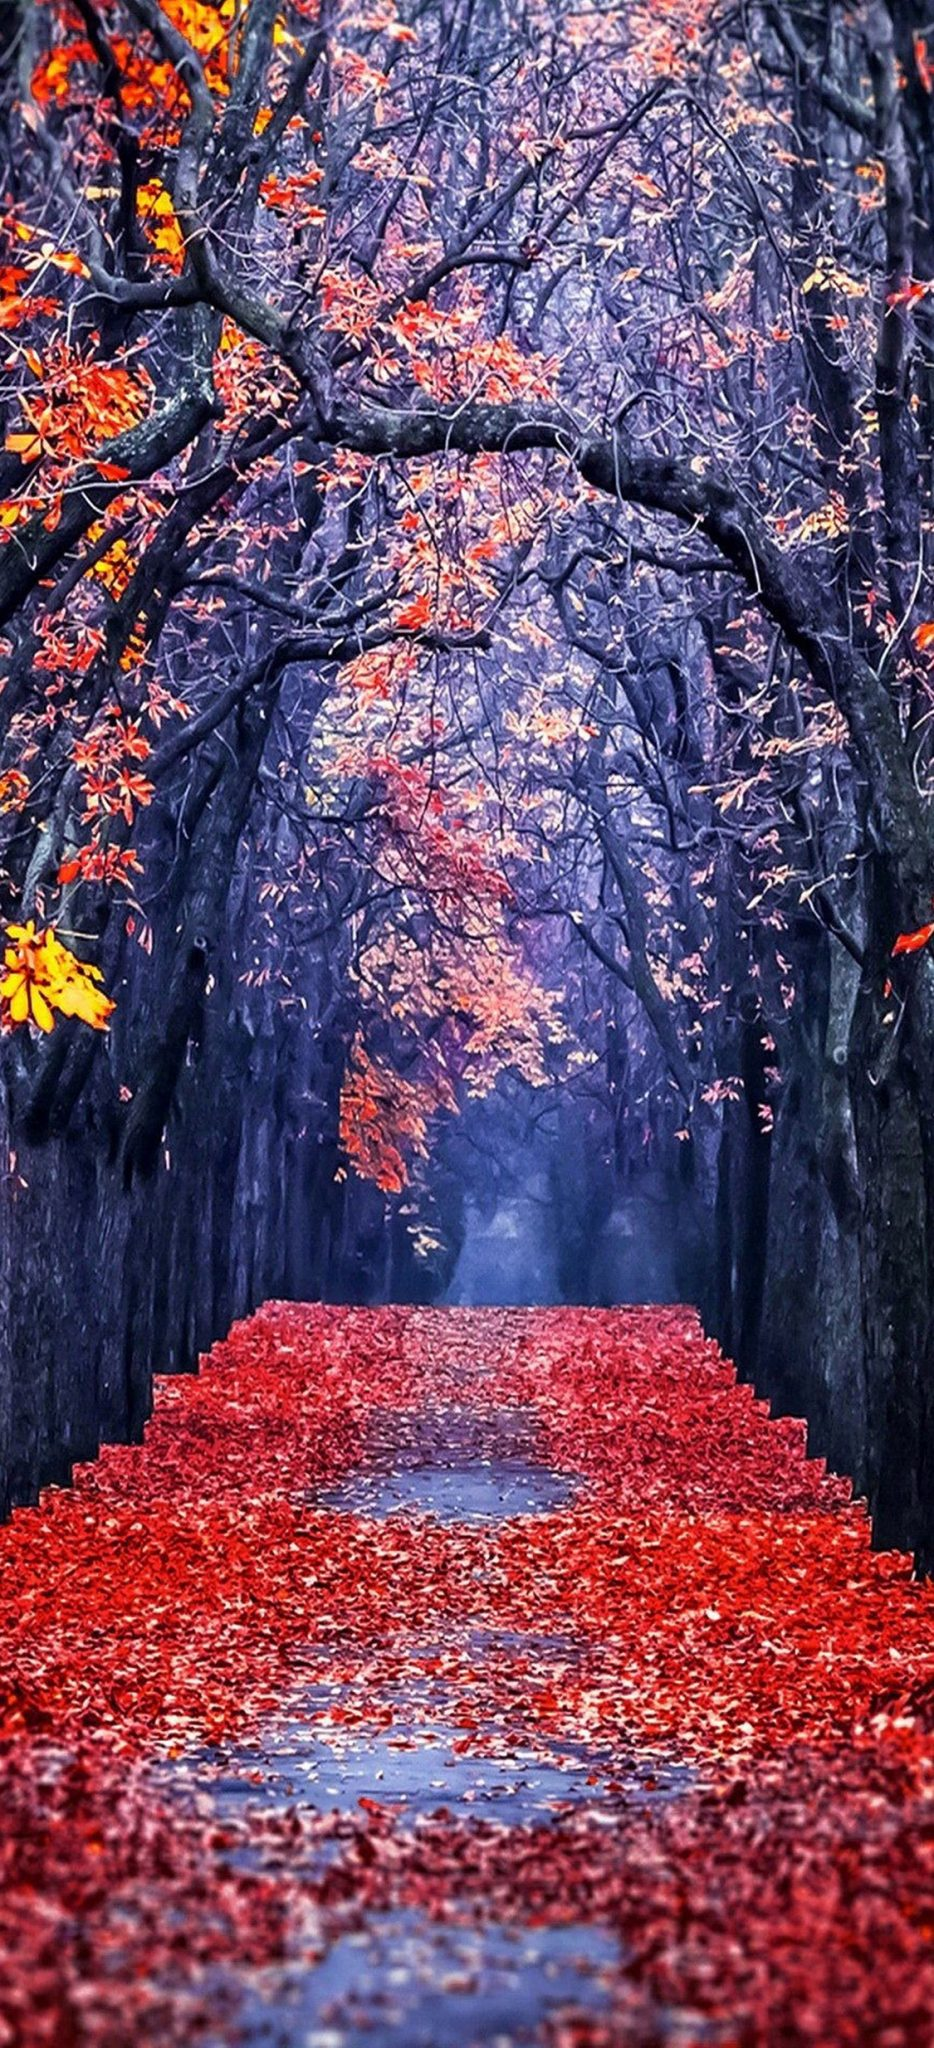 Best Fall Wallpaper For Iphone - iphone-x-autumn-wallpapers-hd-02  2018_508075.jpg